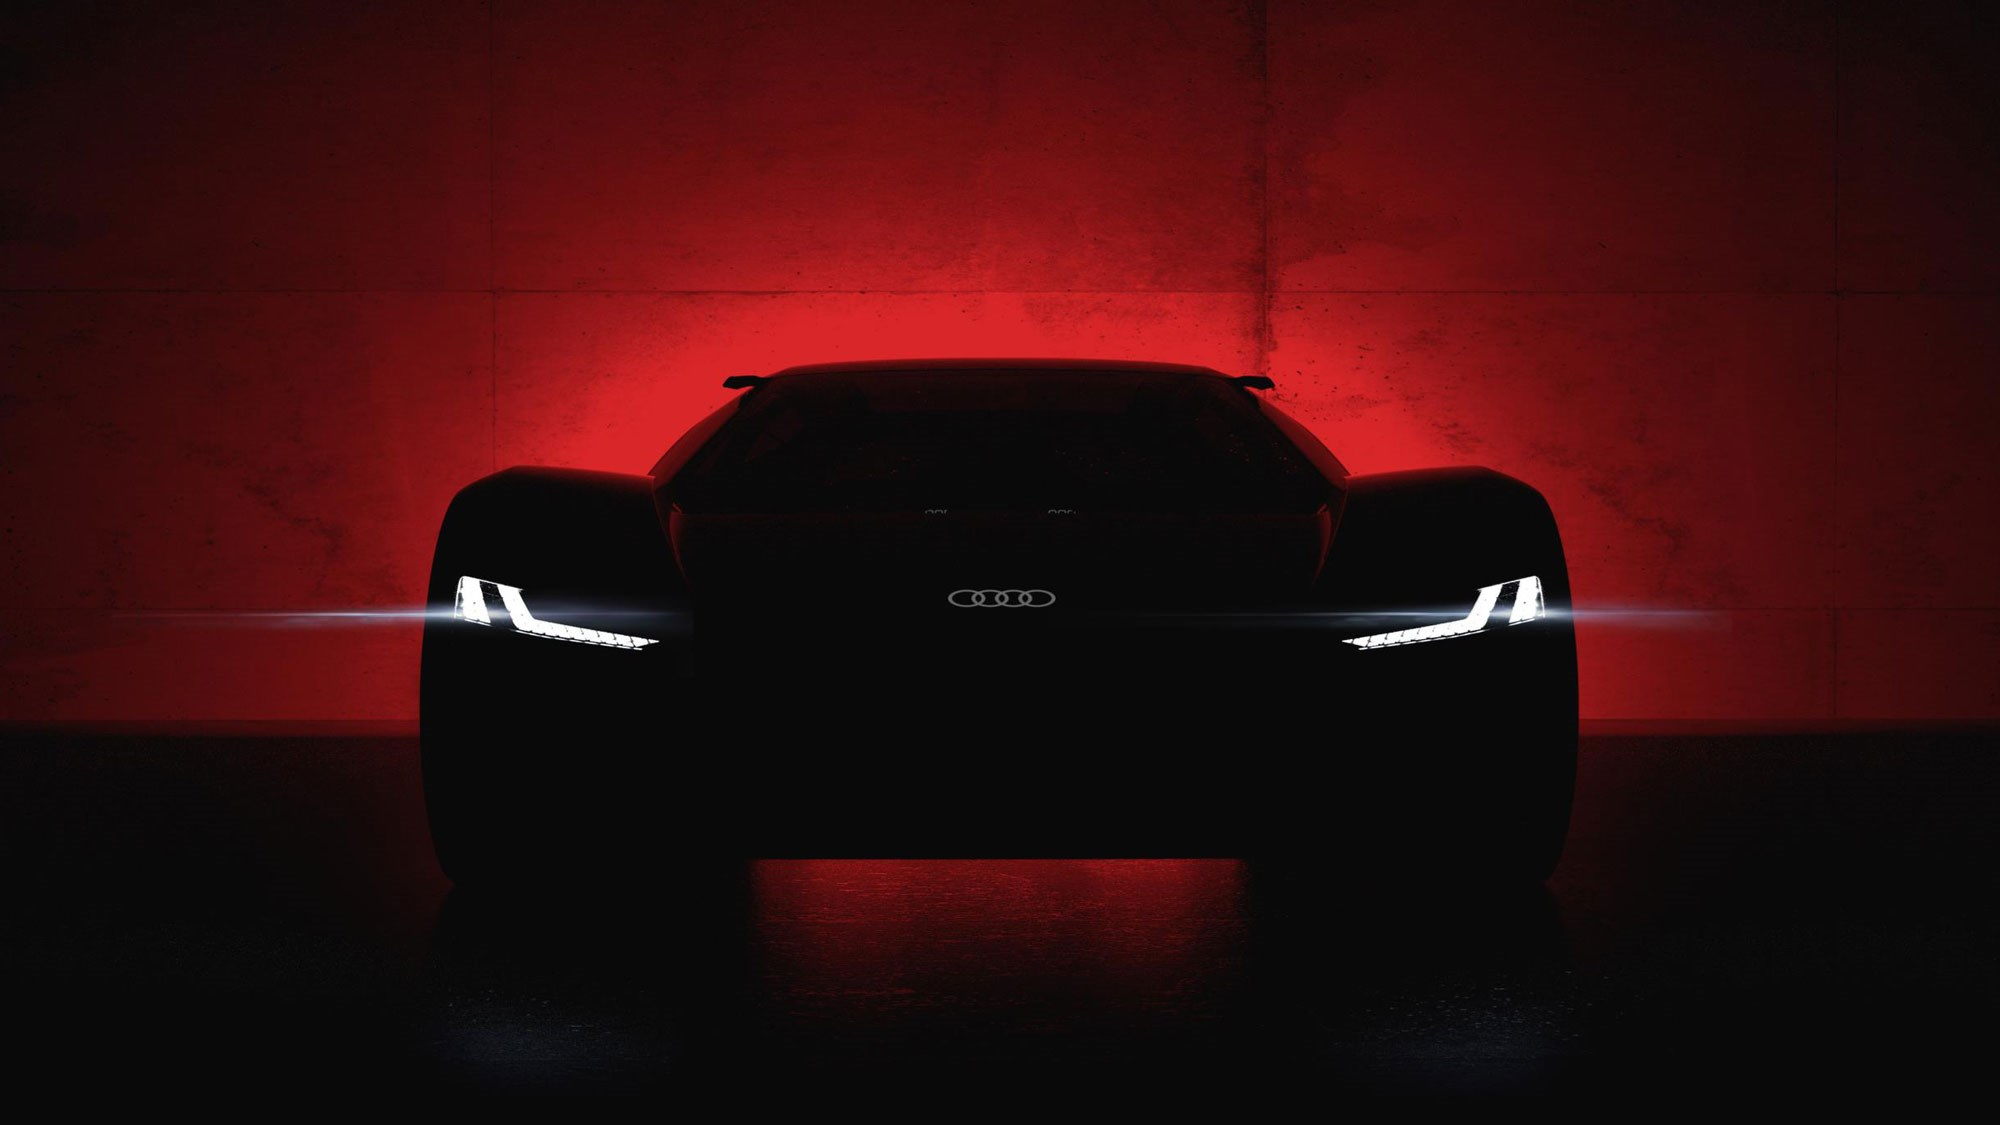 Audi PB18 e-tron: EV supercar concept coming to Pebble Beach